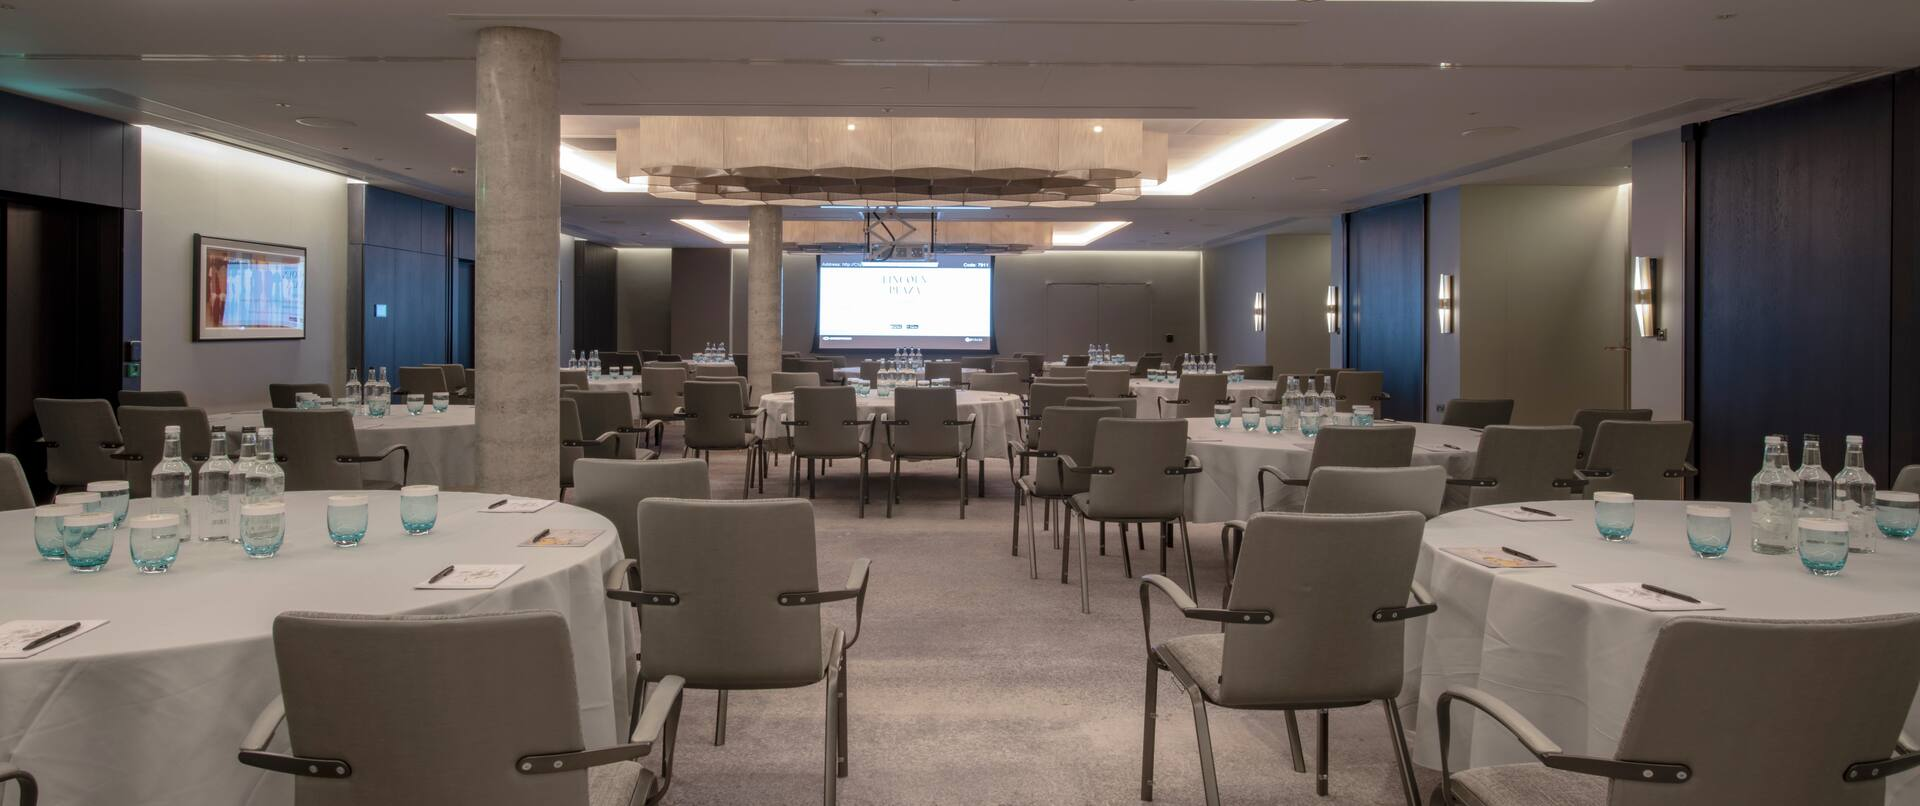 Clipper meeting room set up with round tables